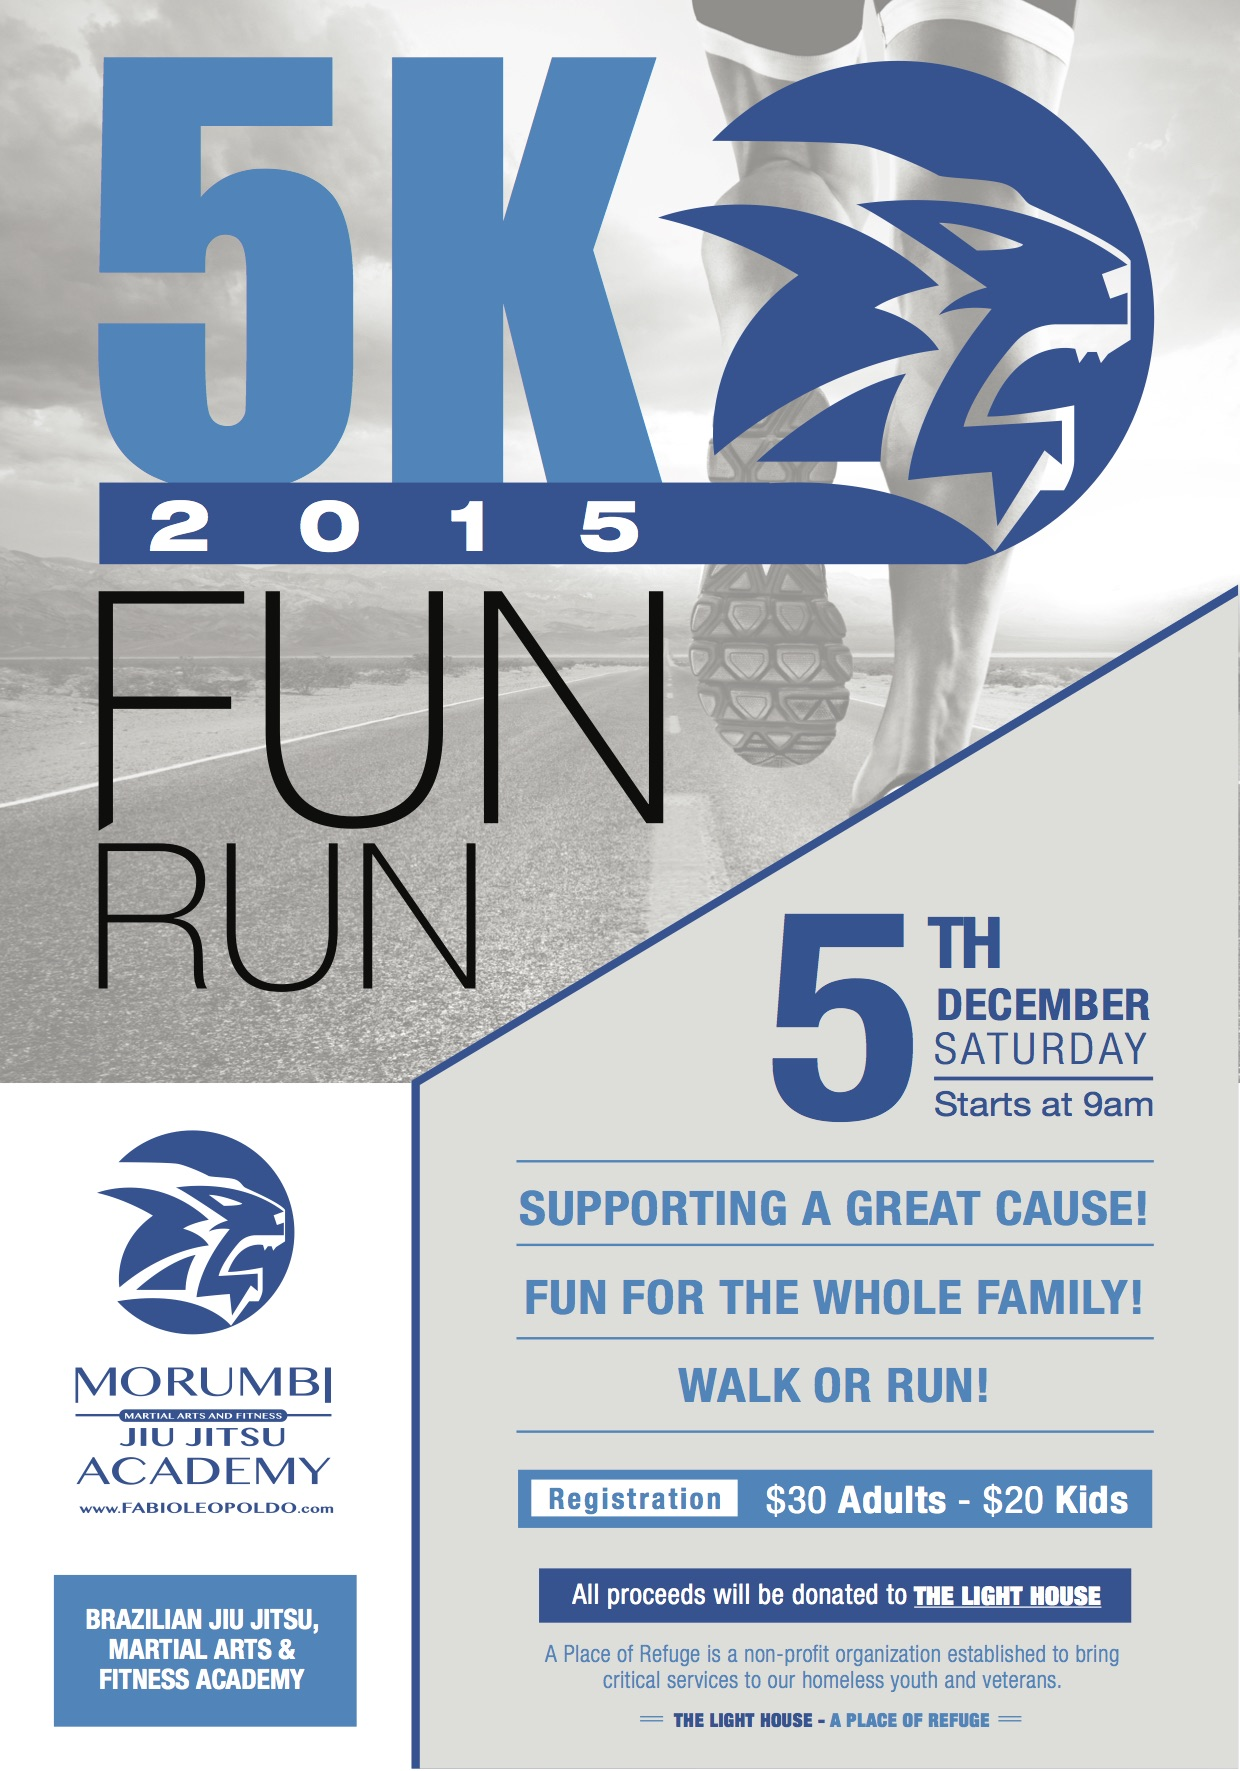 Morumbi Academy Fun Run 2015